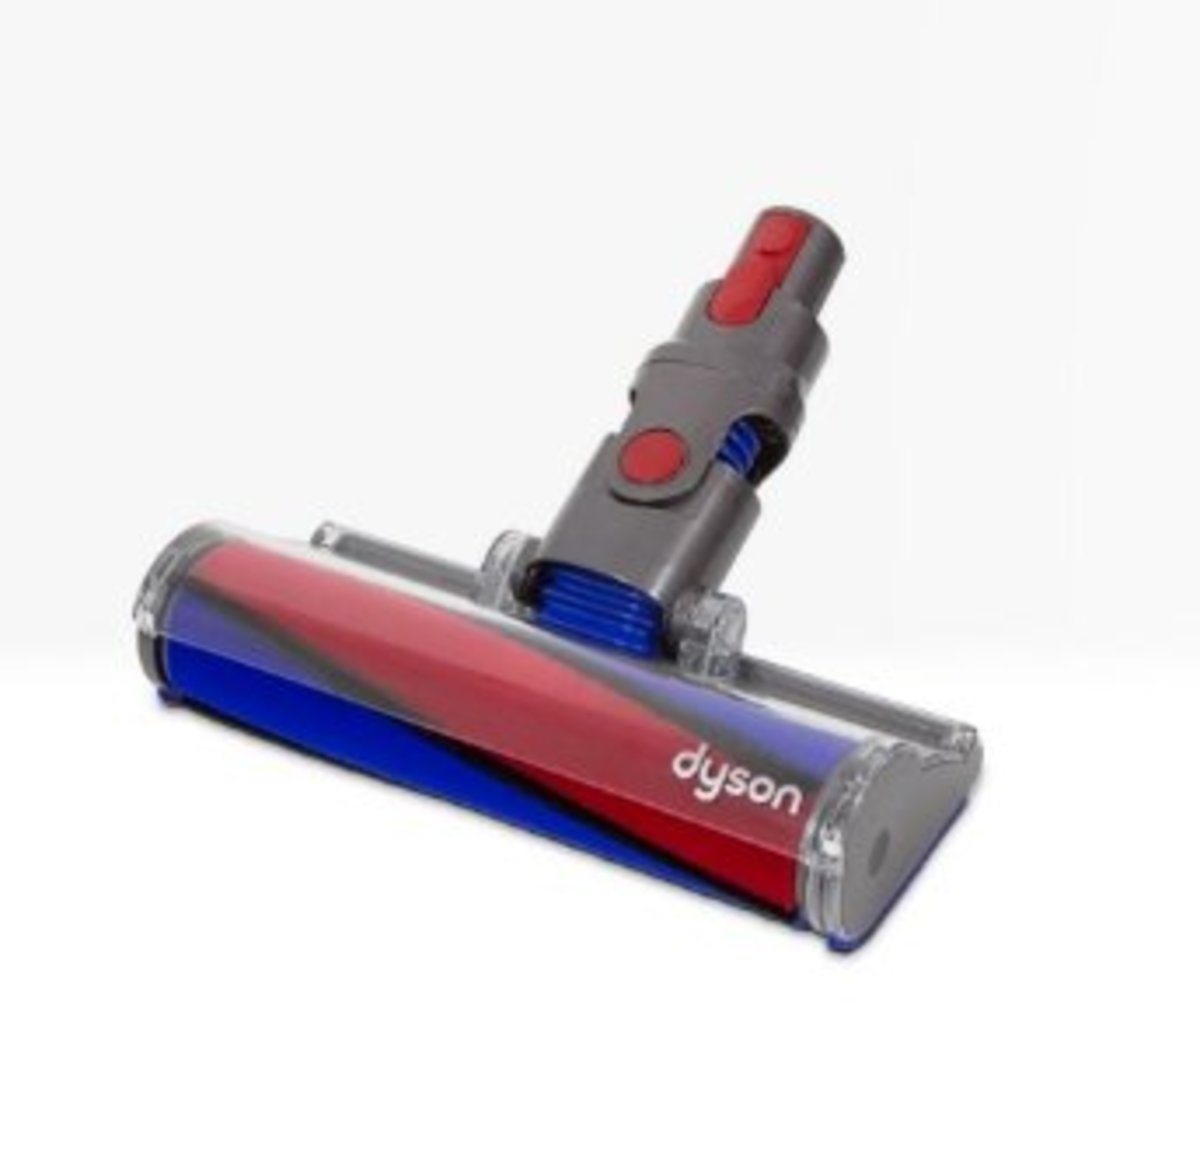 Soft roller cleaner head 966489-12